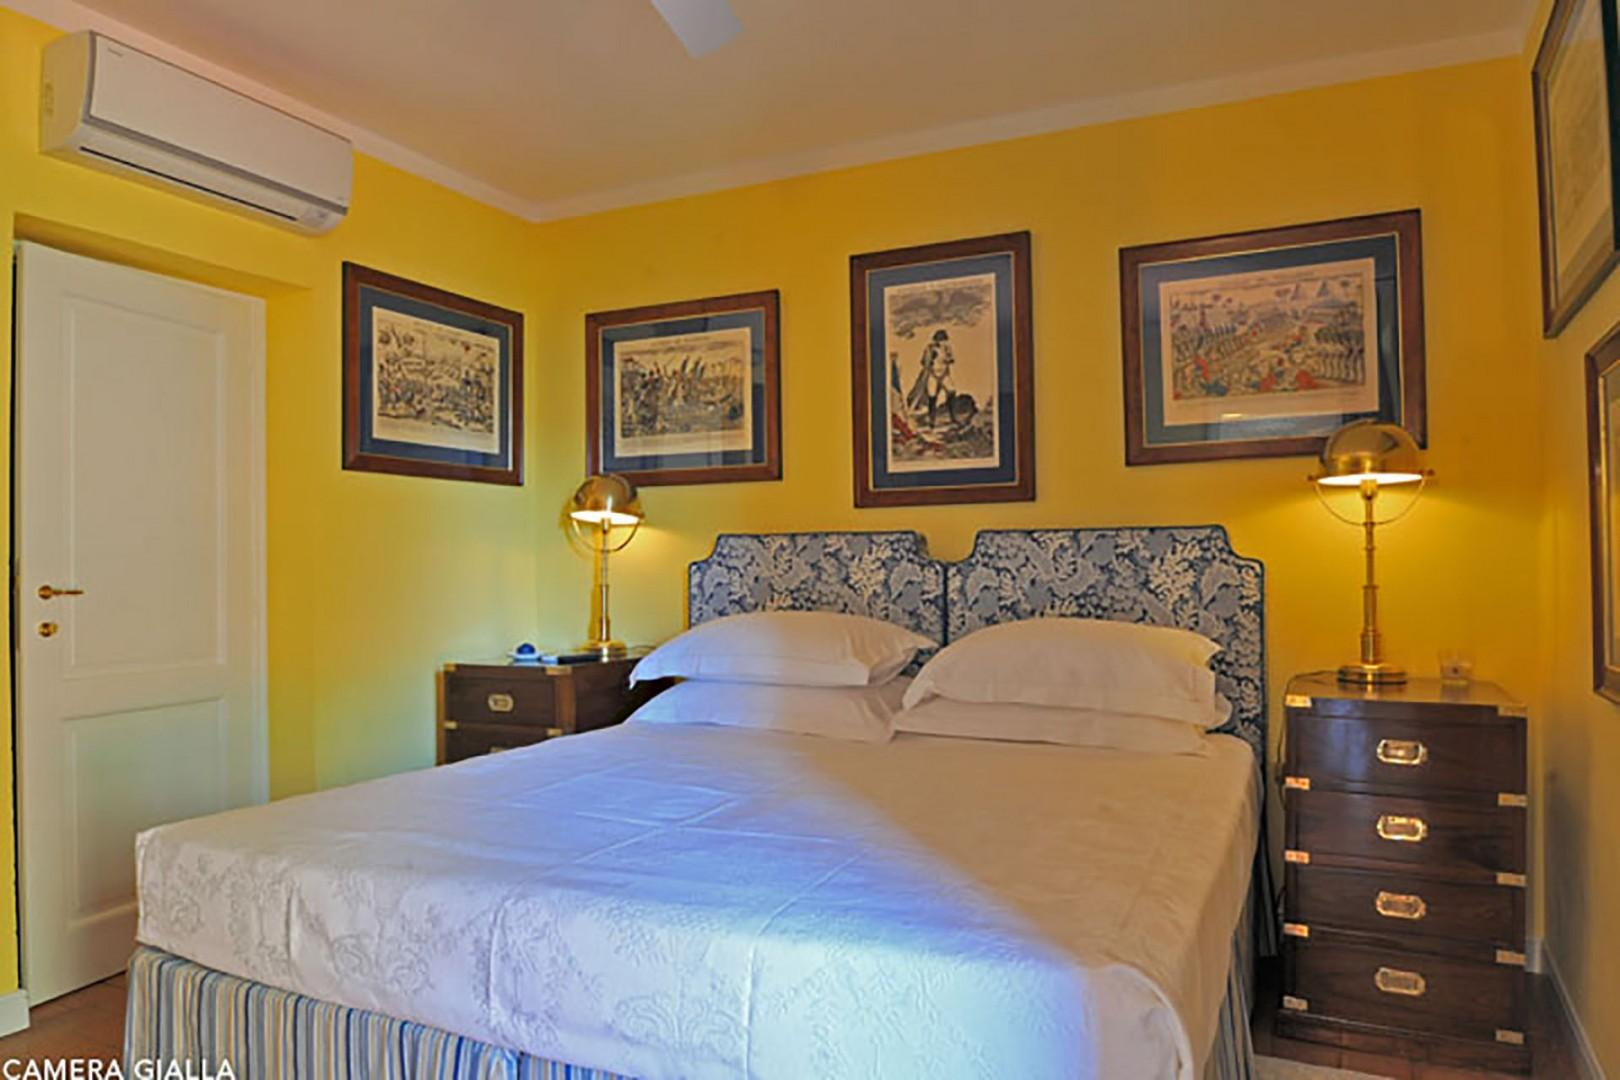 Bedroom 4 can also be prepared together or as separate beds, en suite bathroom with shower.